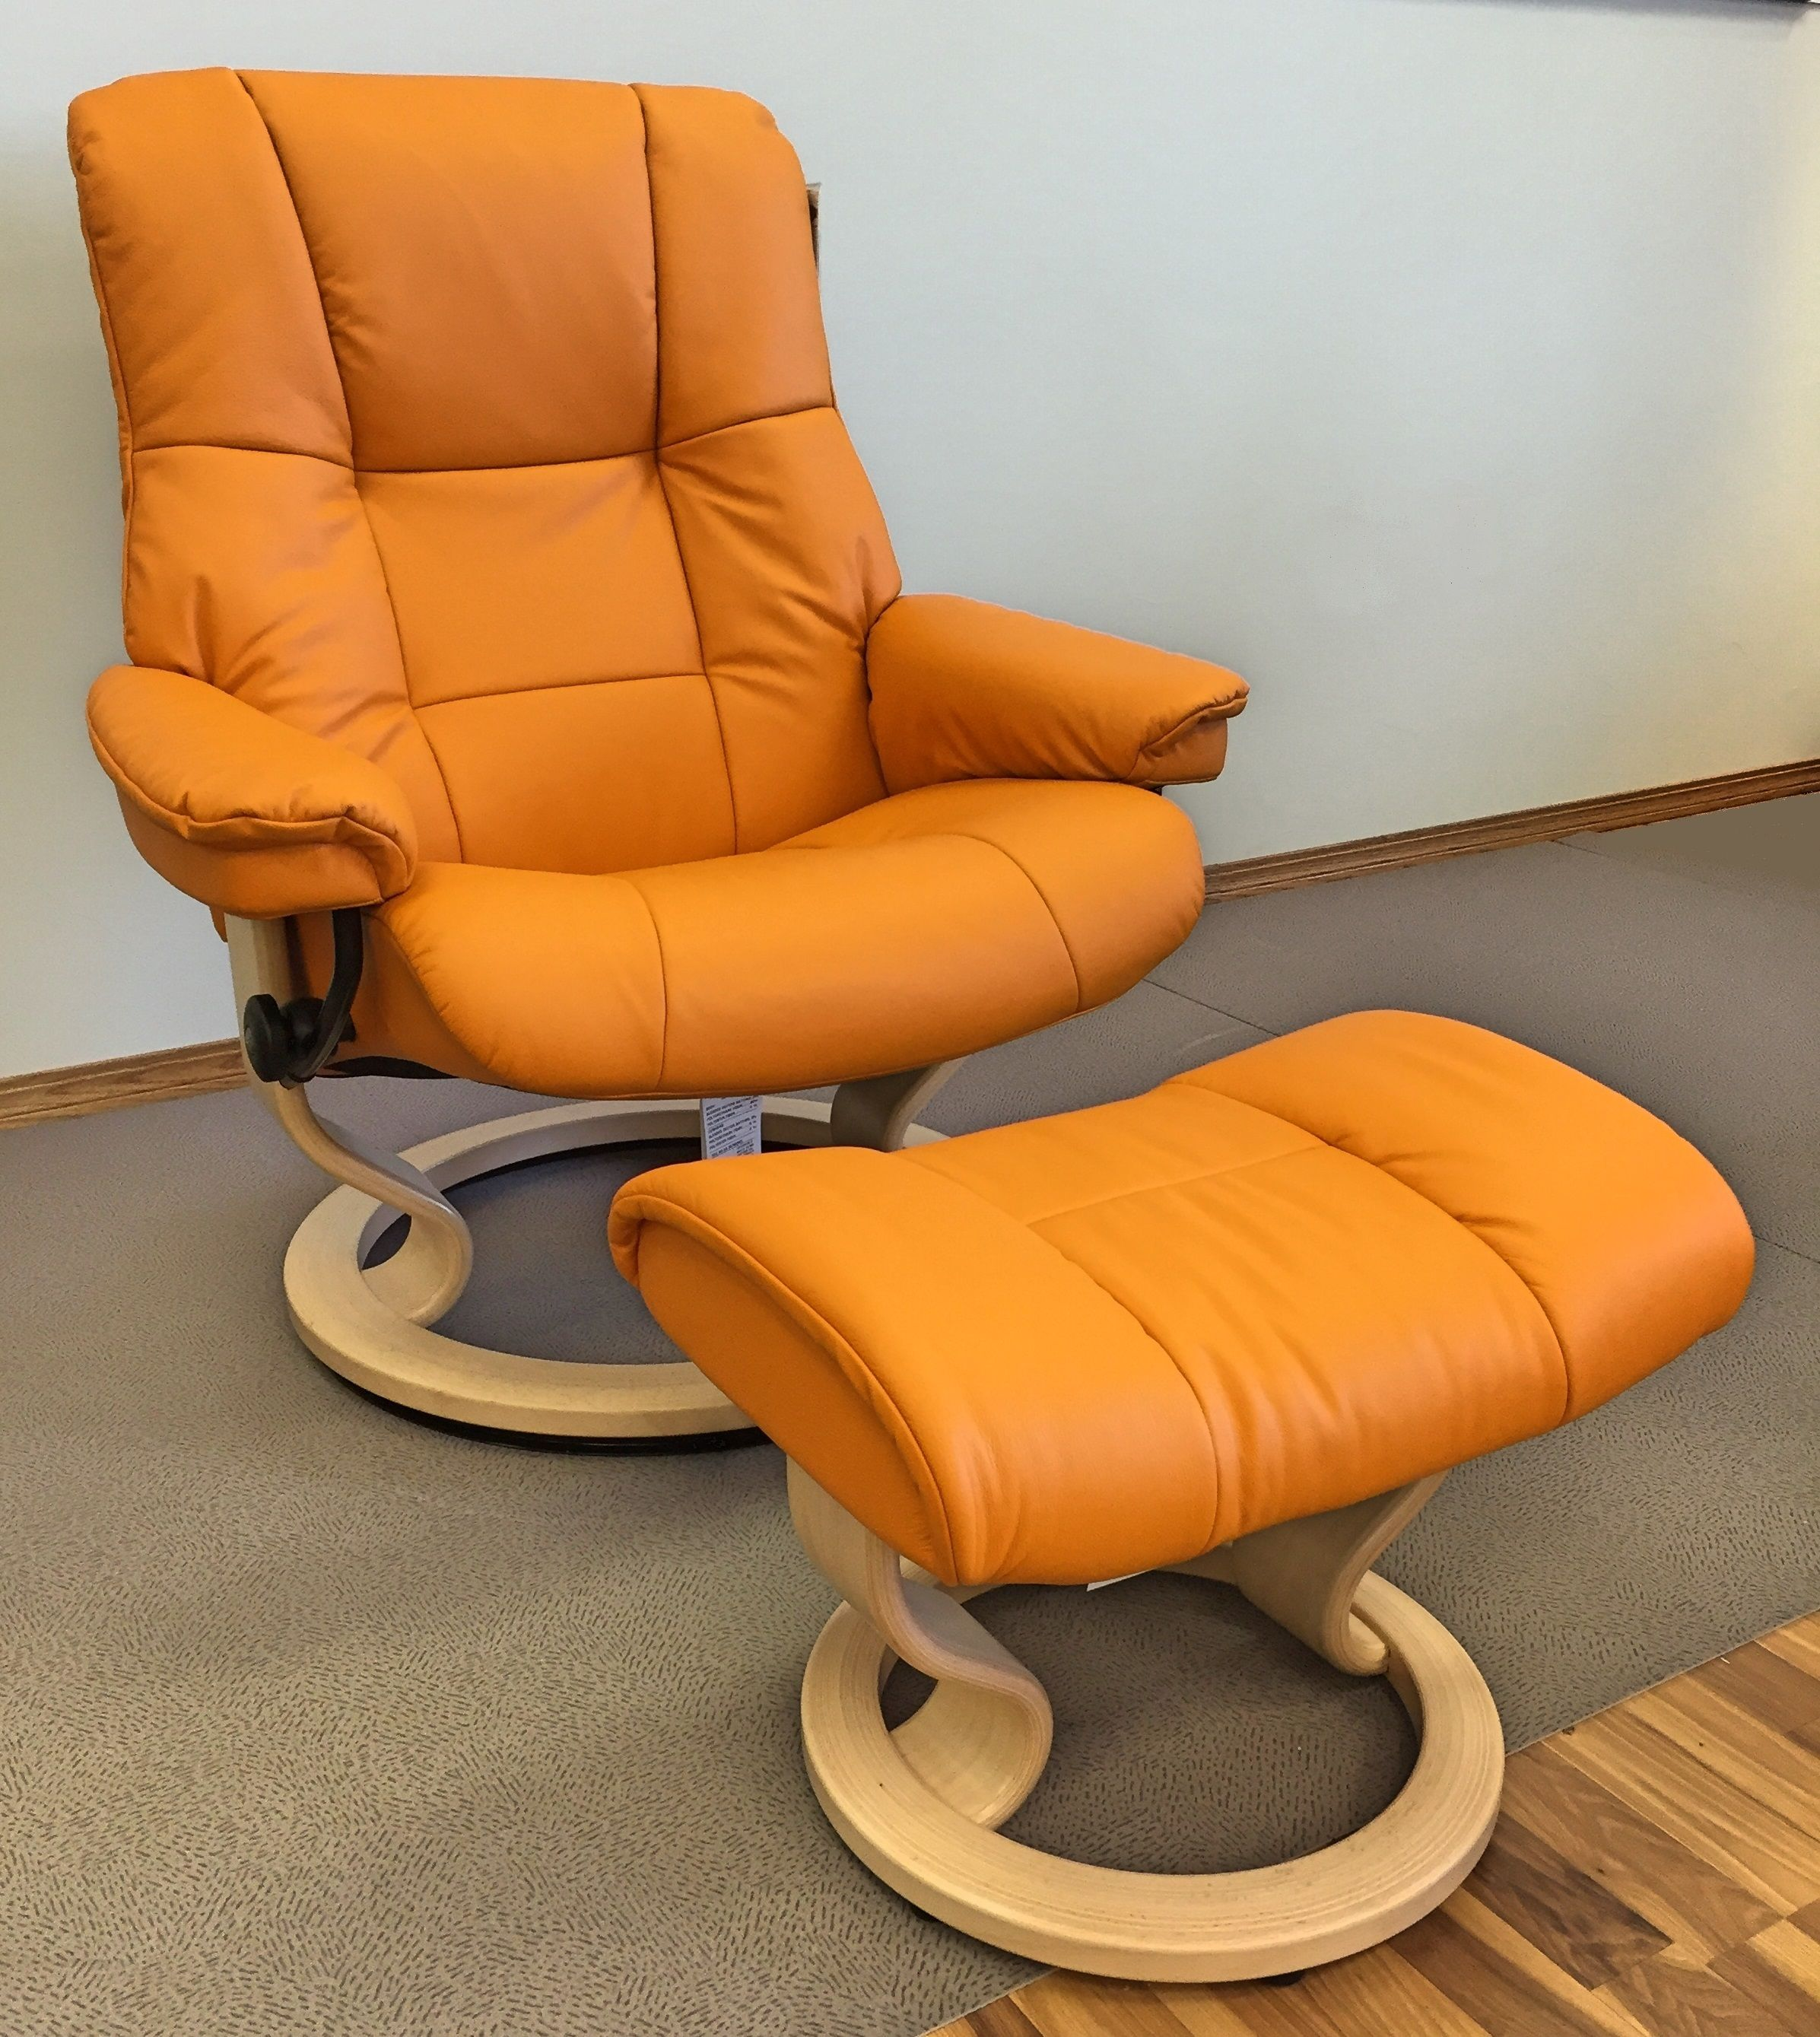 Ekornes chairs for sale stressless paloma indigo leather by ekornes - Ekornes Stressless Mayfair Large In Paloma Clementine With Natural Base Available At Scanhome Furnishings In